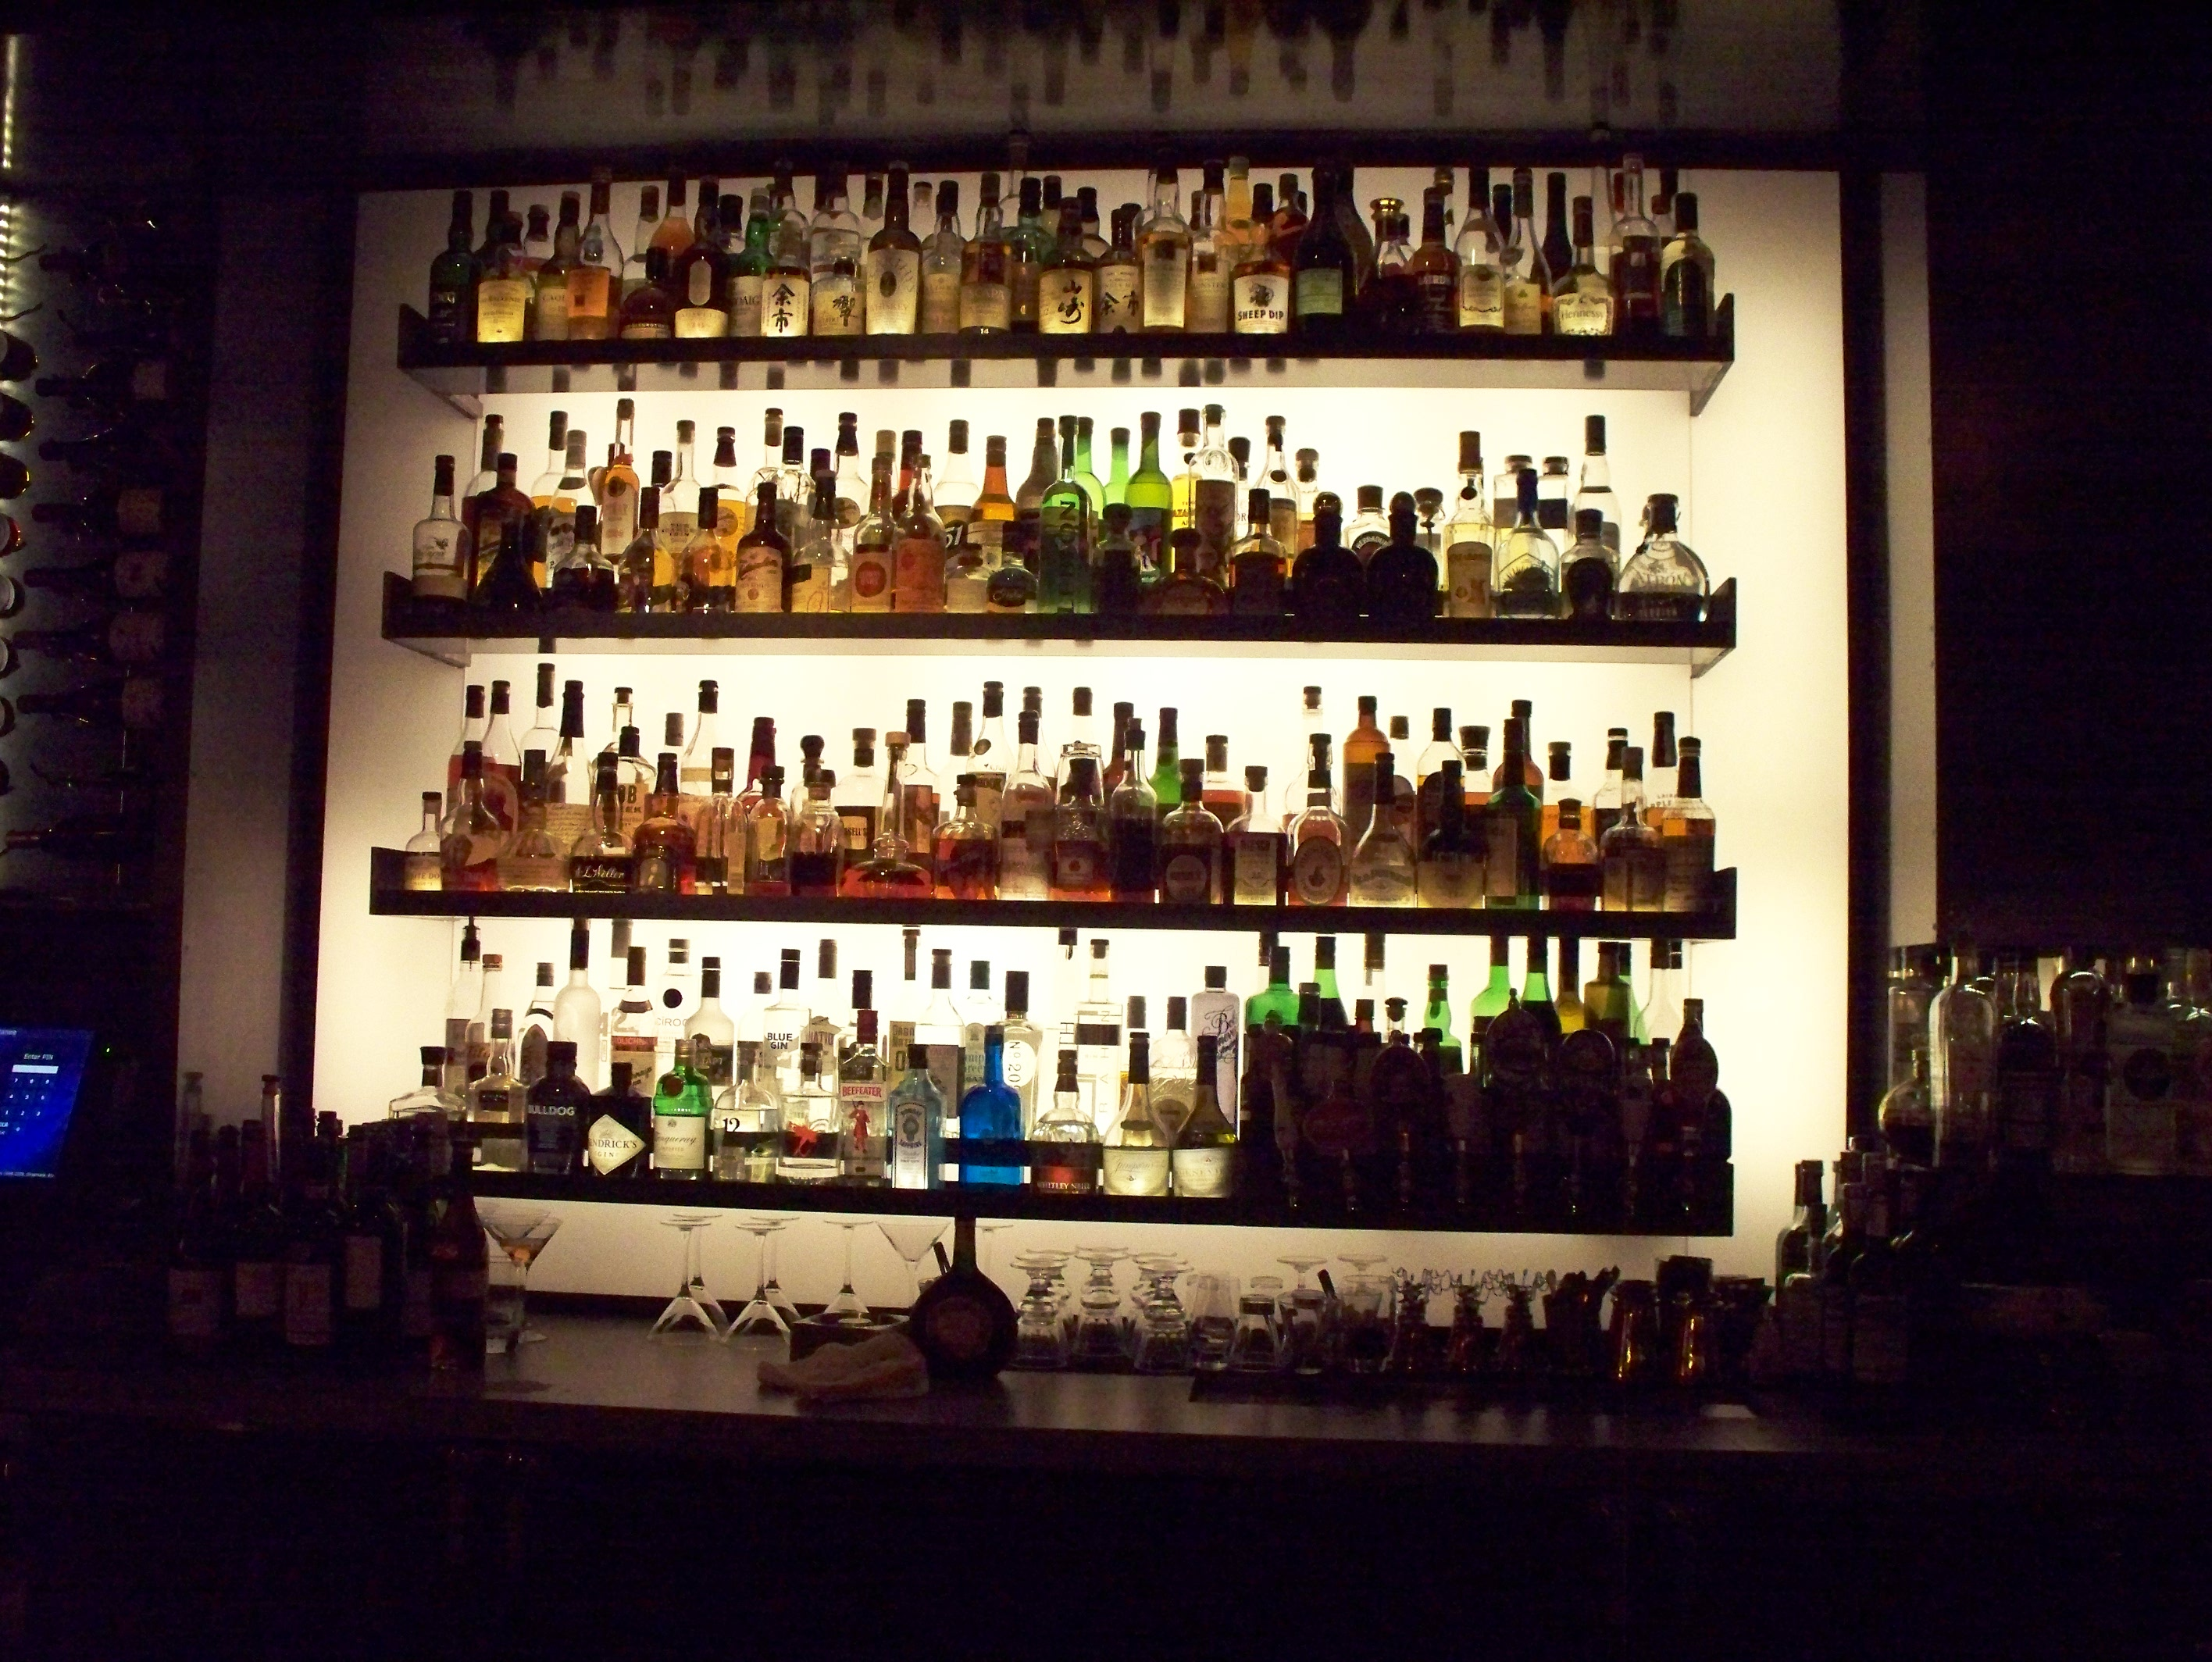 Superieur File:Liquor Bottles On A Bar Wall.JPG